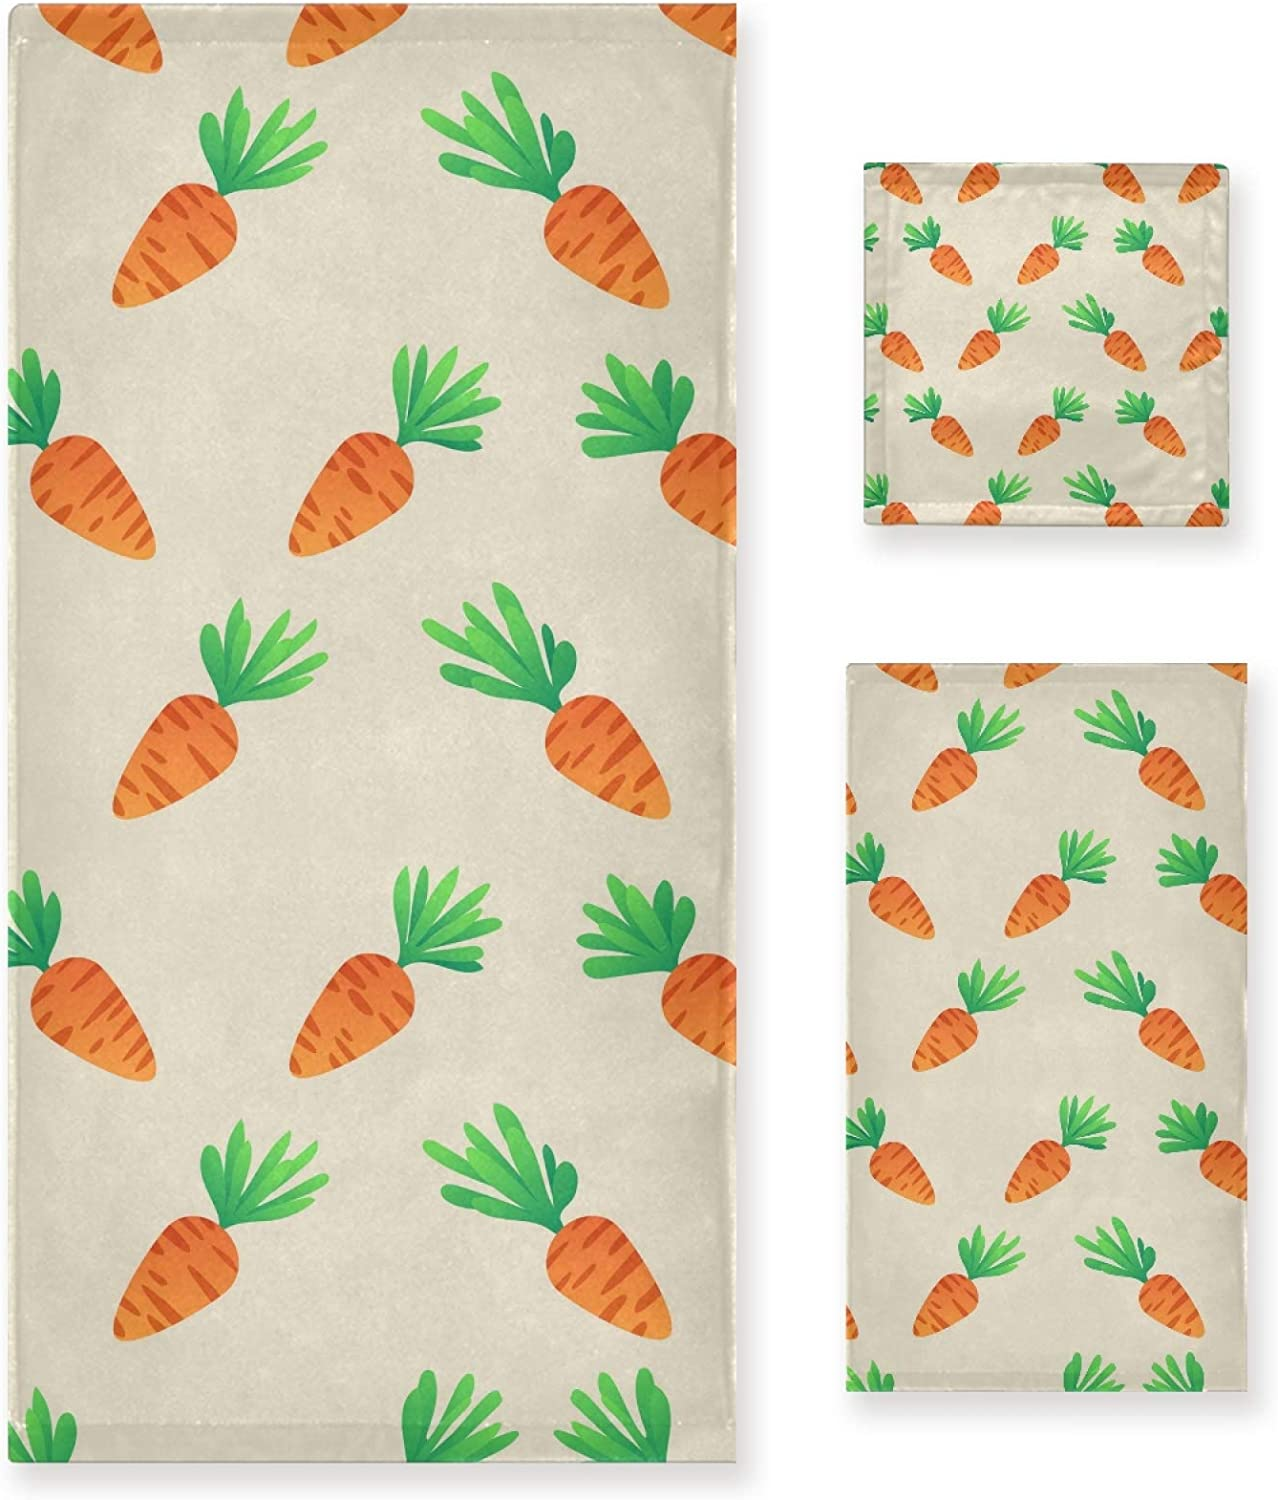 Eastern Carrot Towel Bathroom Sets Hand Bath Indianapolis Mall W Cheap mail order specialty store 1